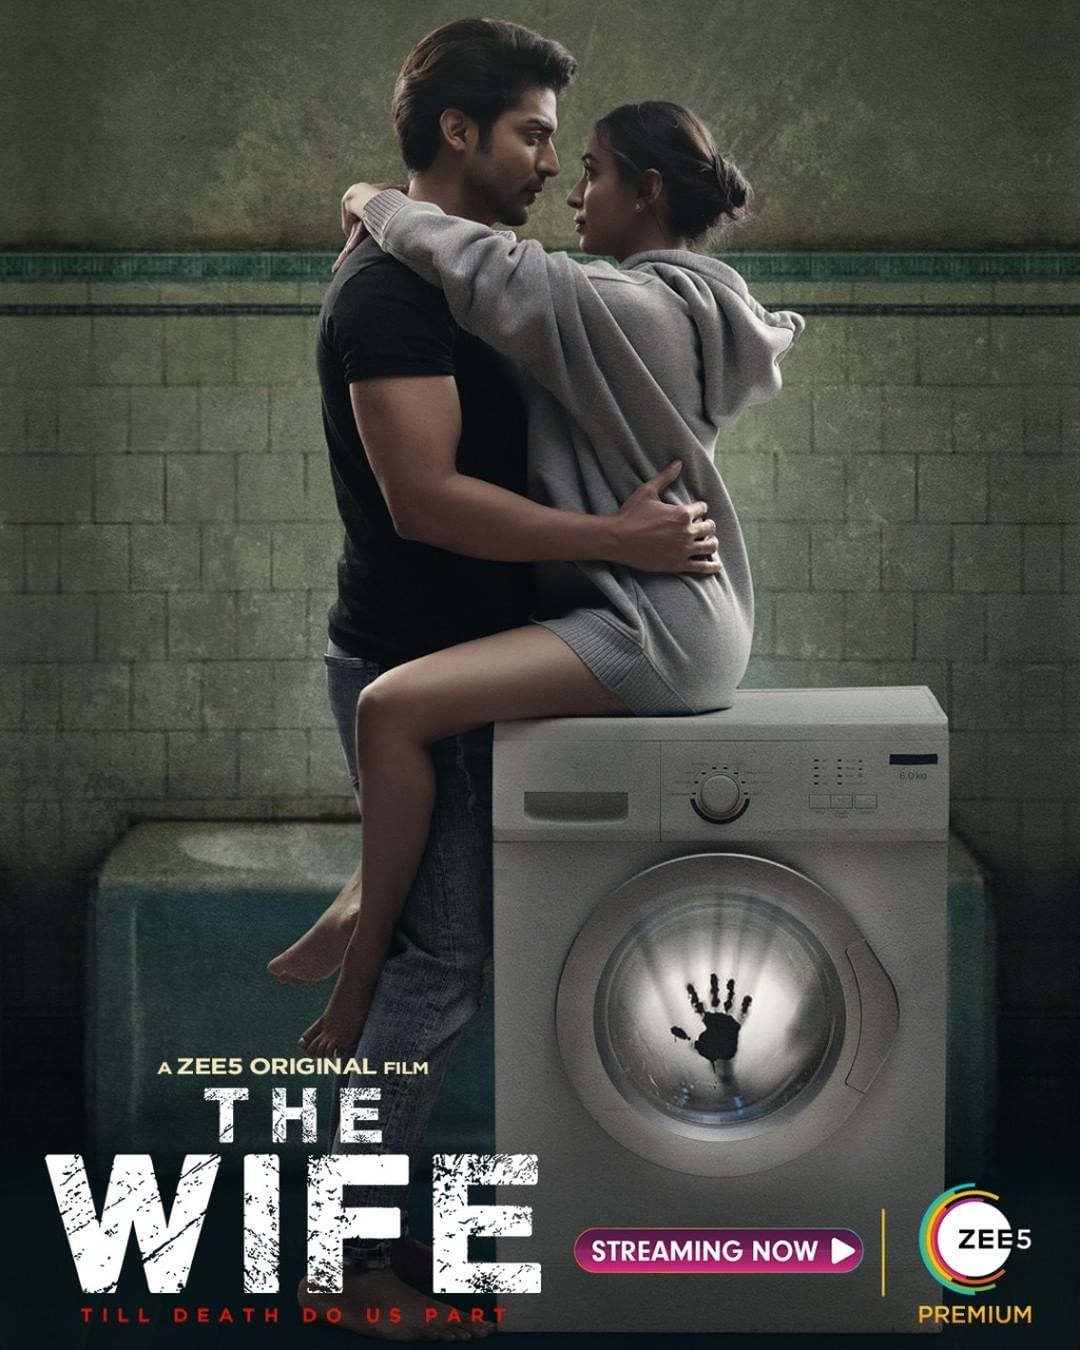 The Wife (2021) Review - Engaging horror film focuses more on the script, less on gimmicks